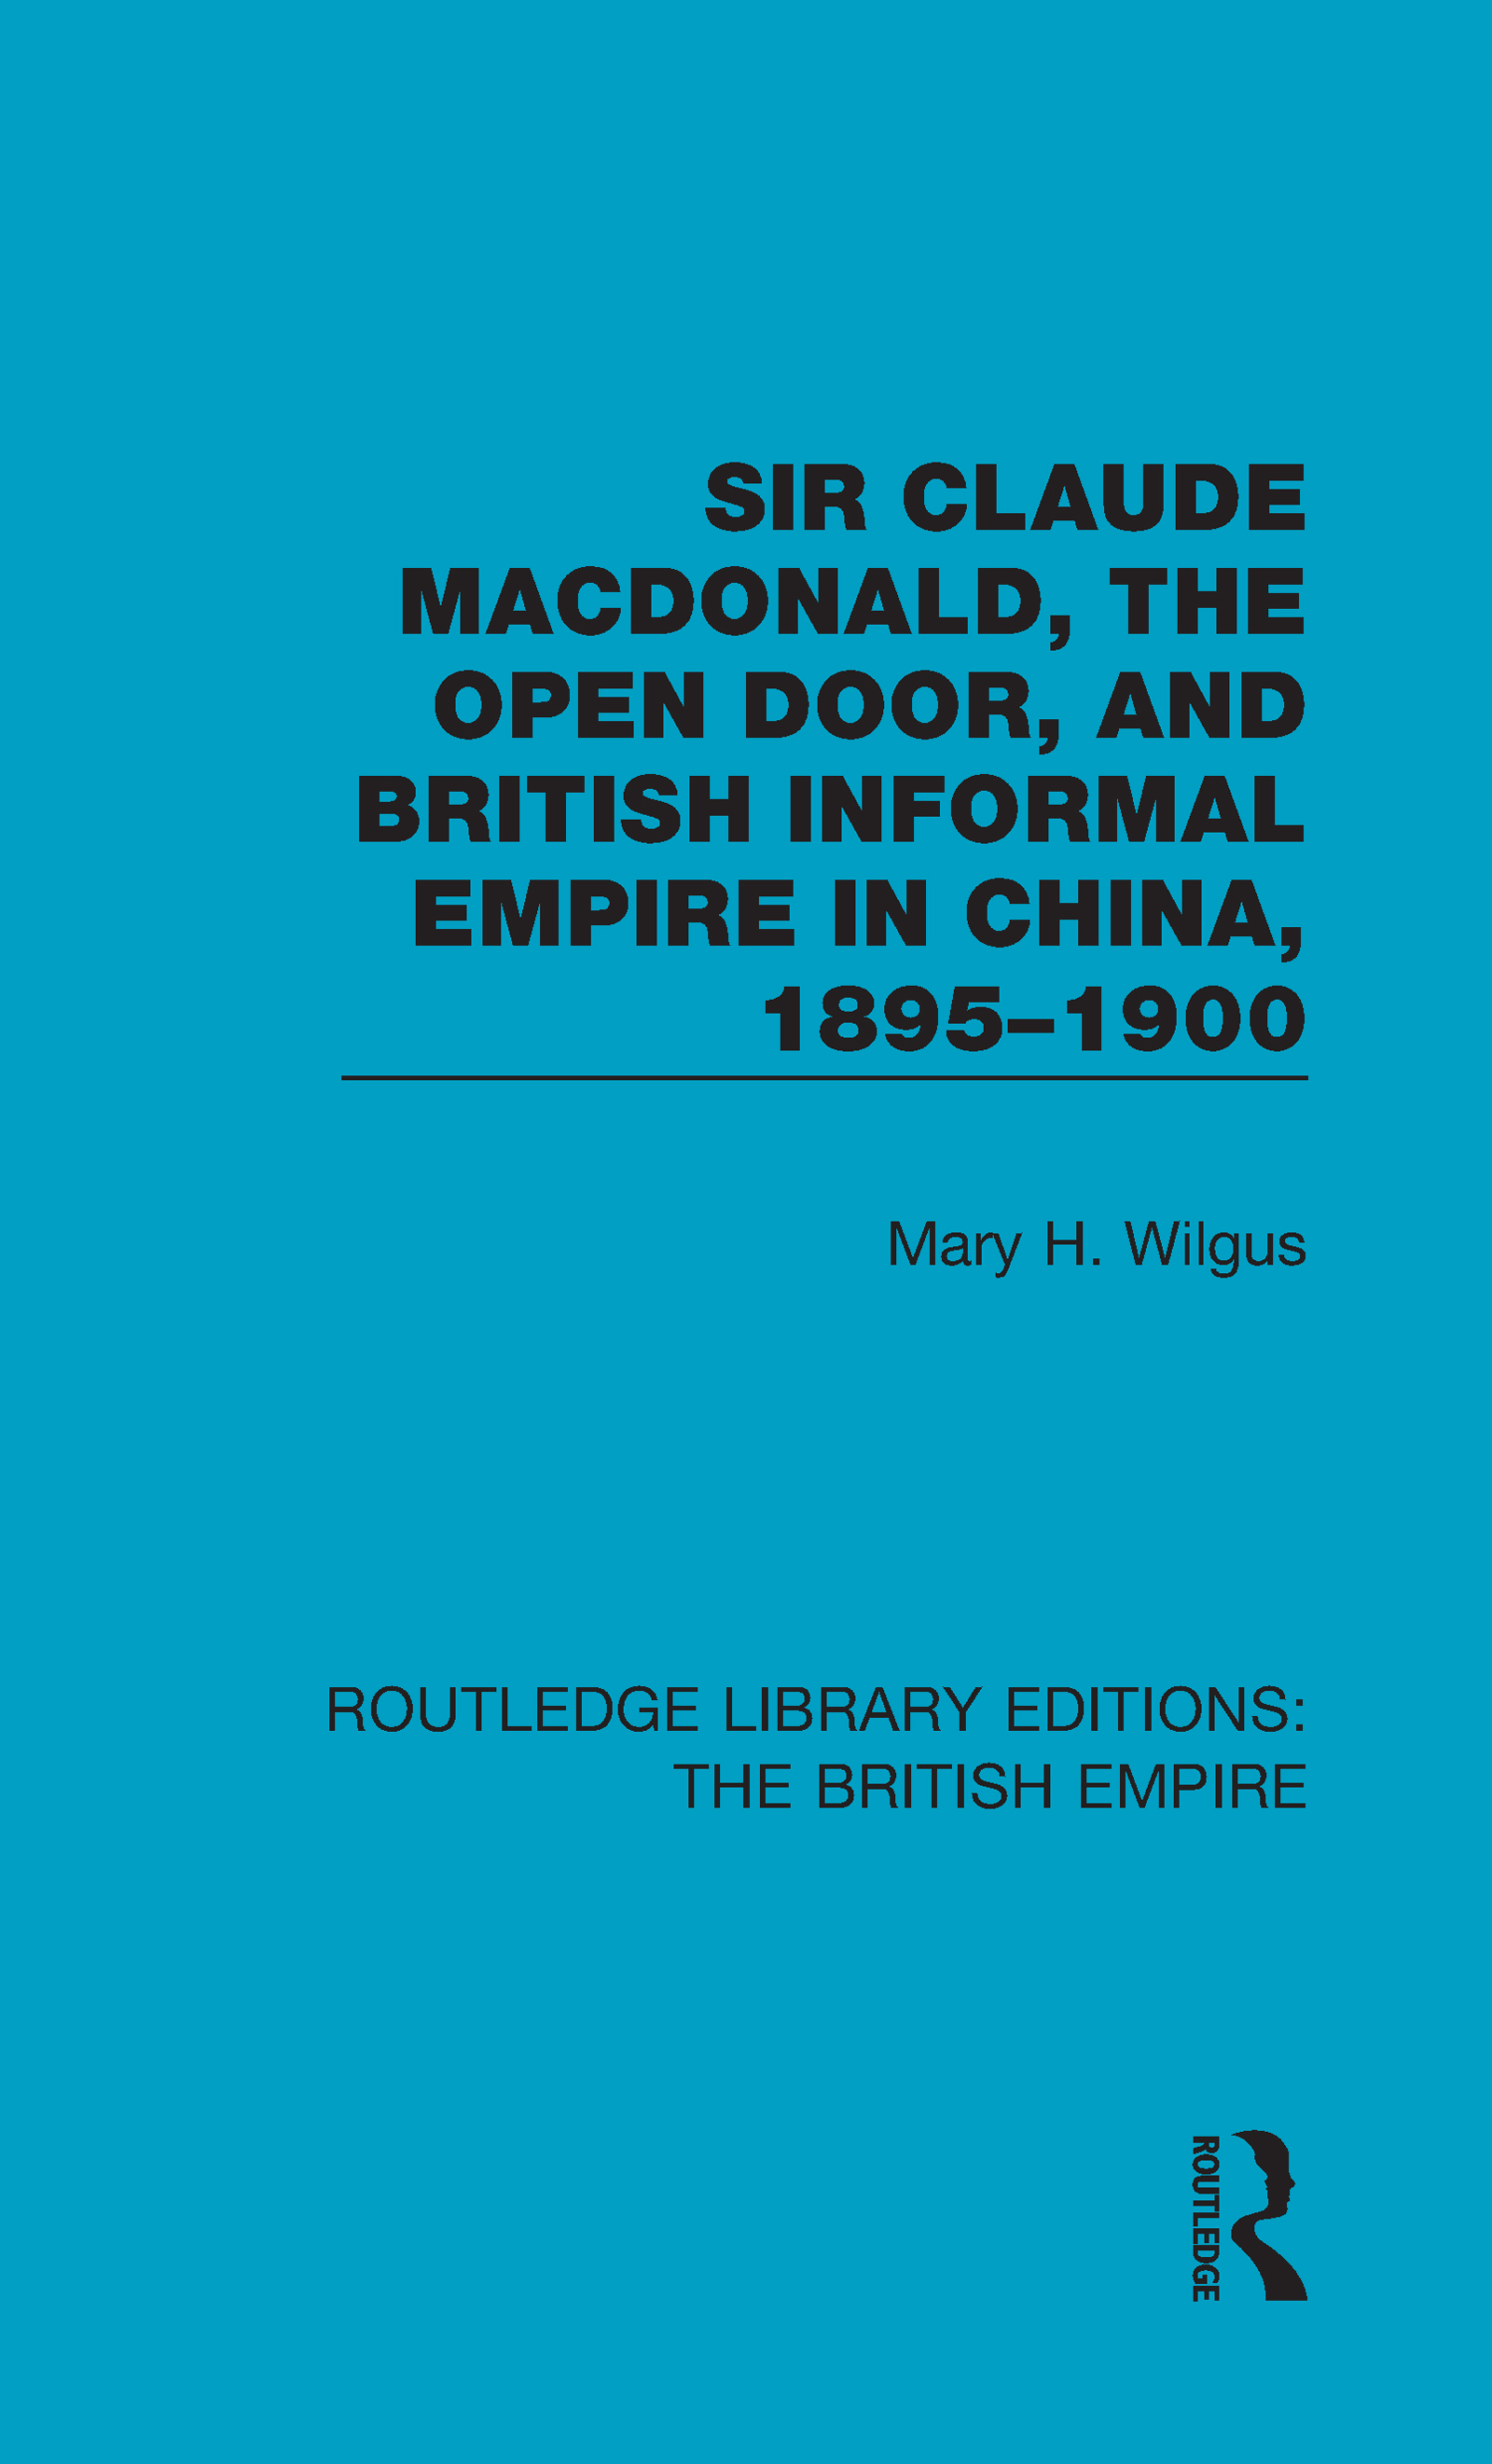 Sir Claude MacDonald, the Open Door, and British Informal Empire in China, 1895-1900 book cover